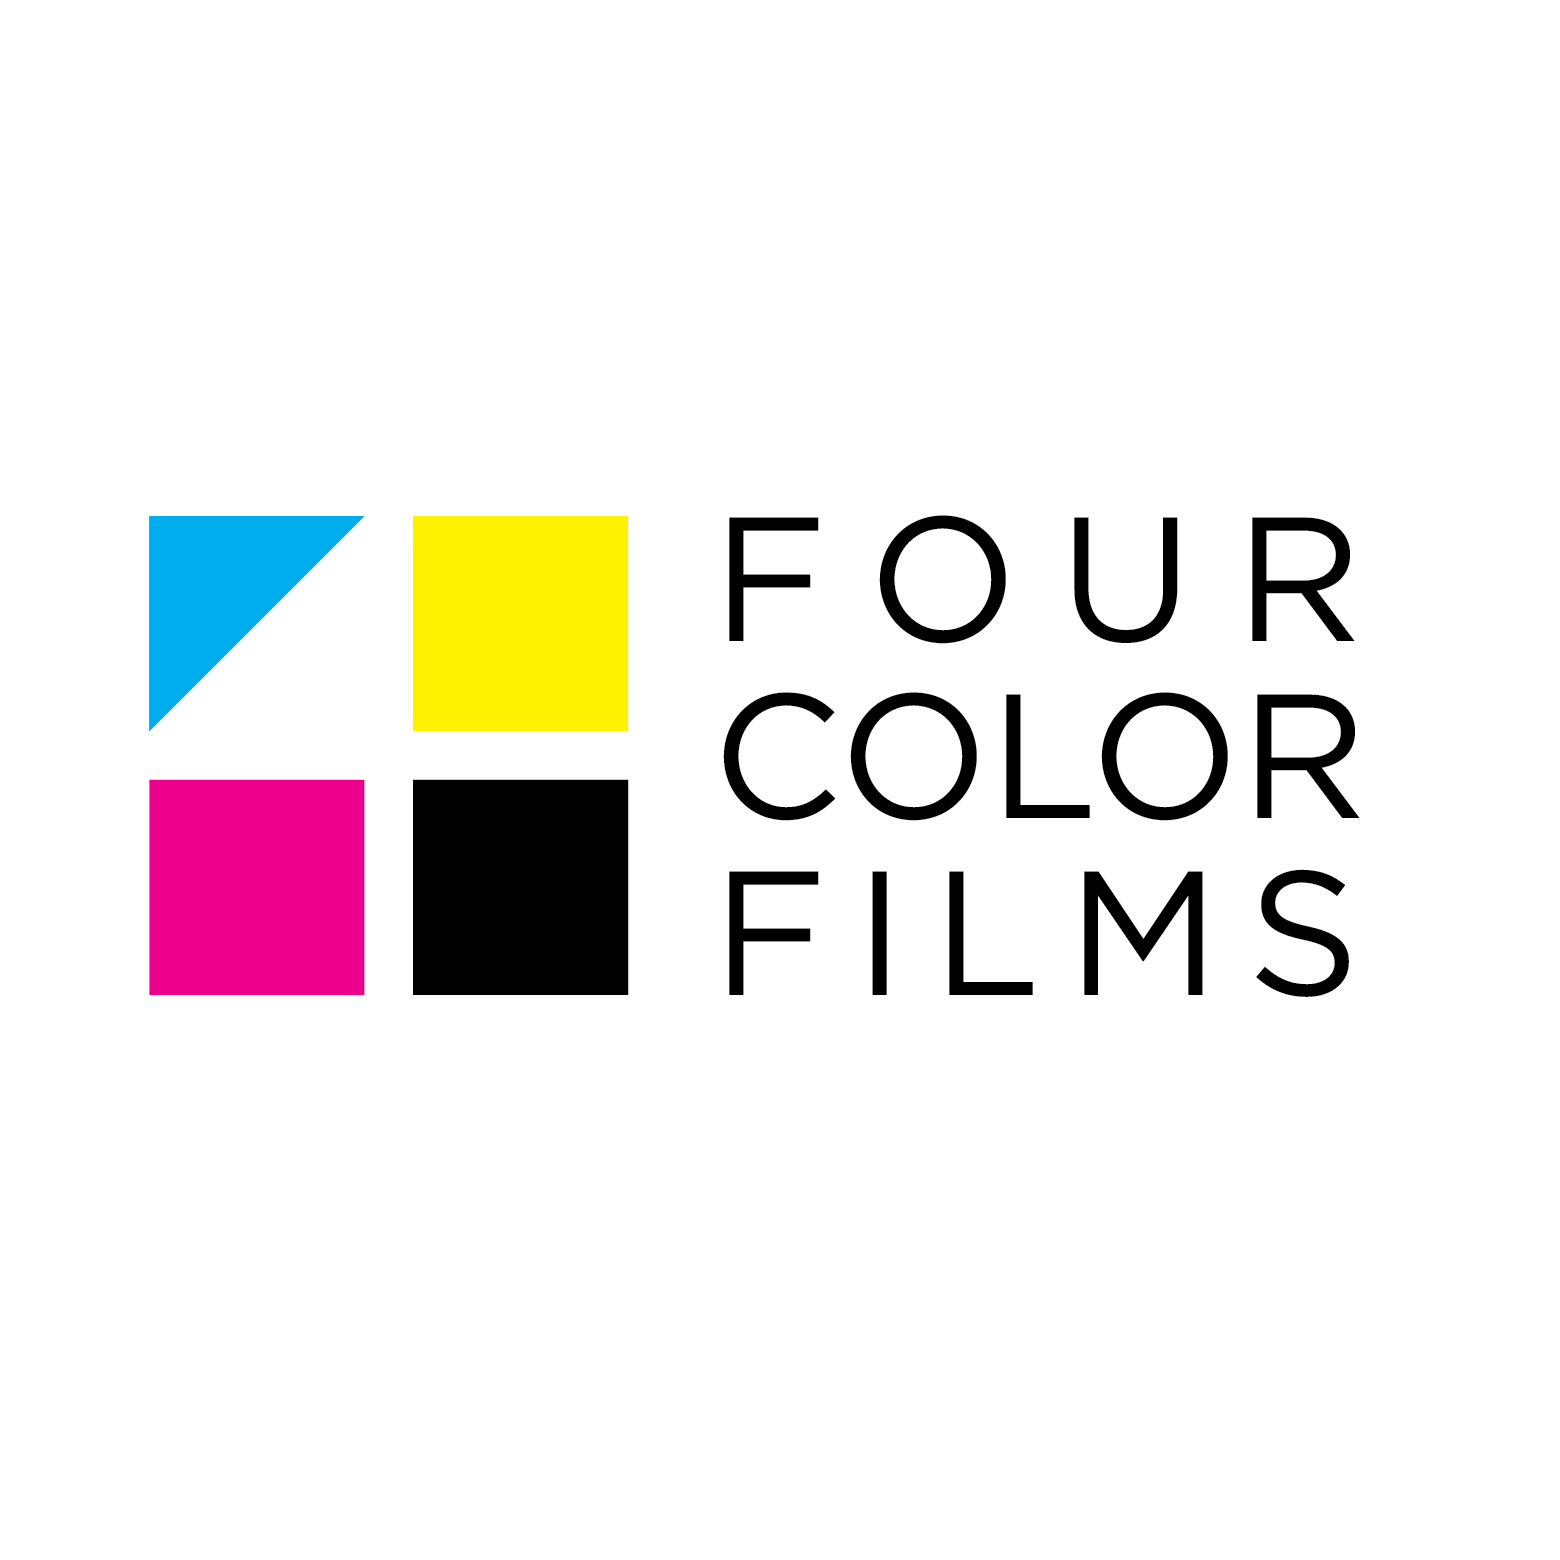 fourcolorfilms Logo